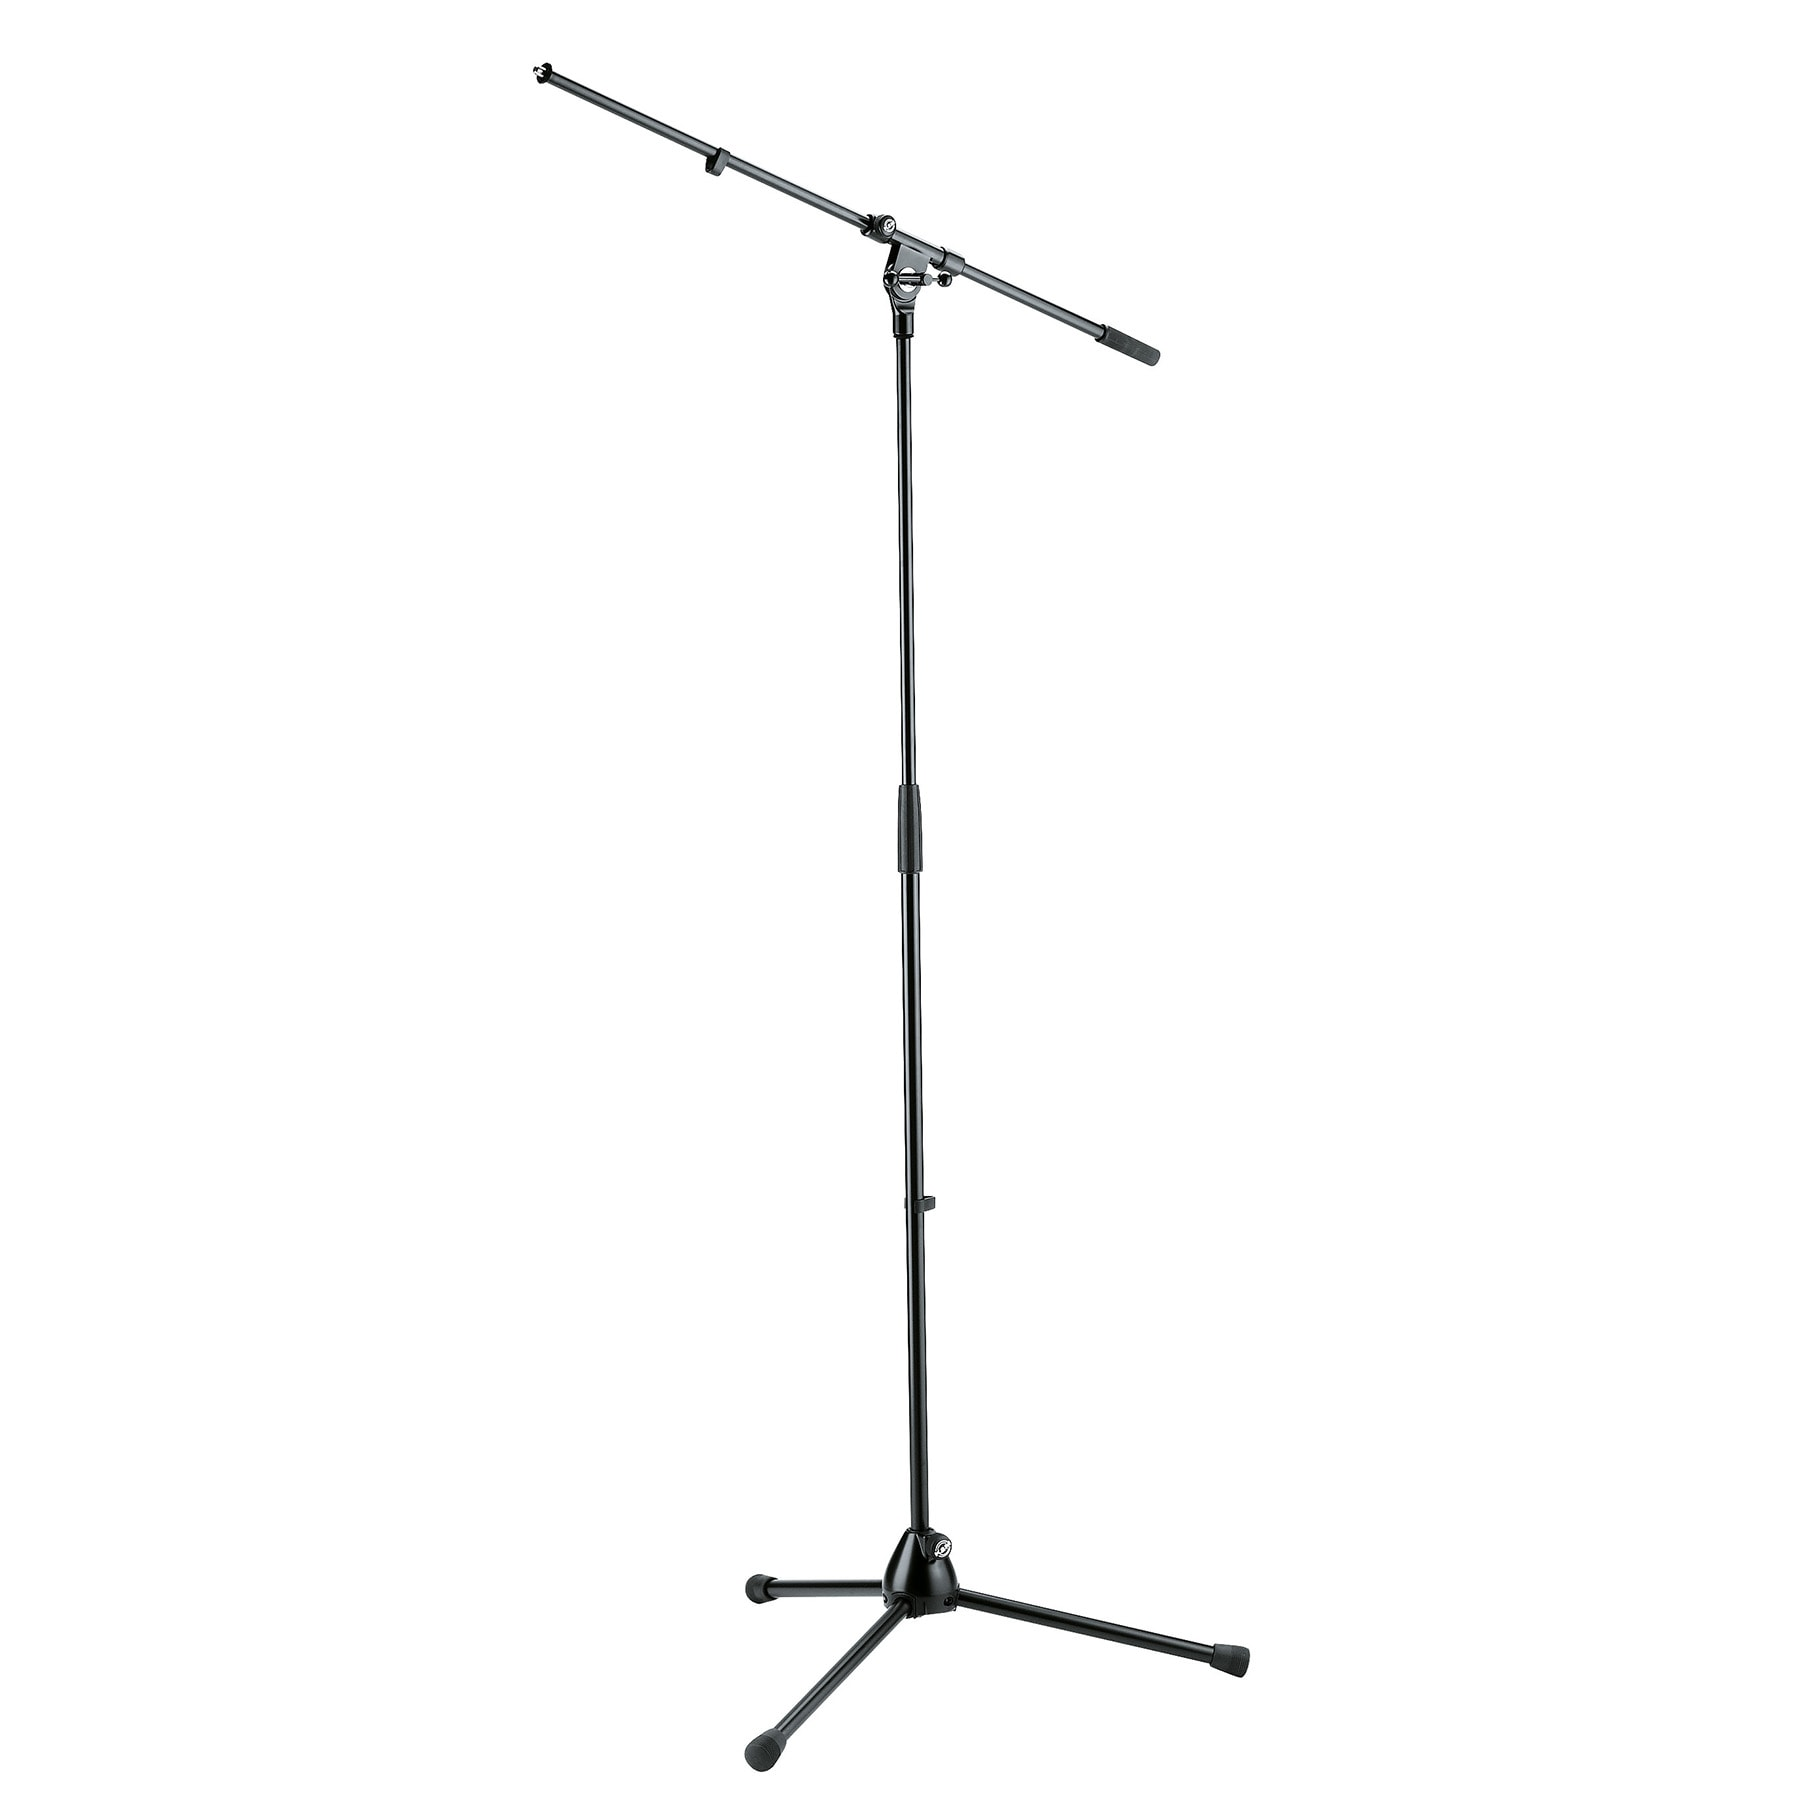 KM210_2 - Microphone stand